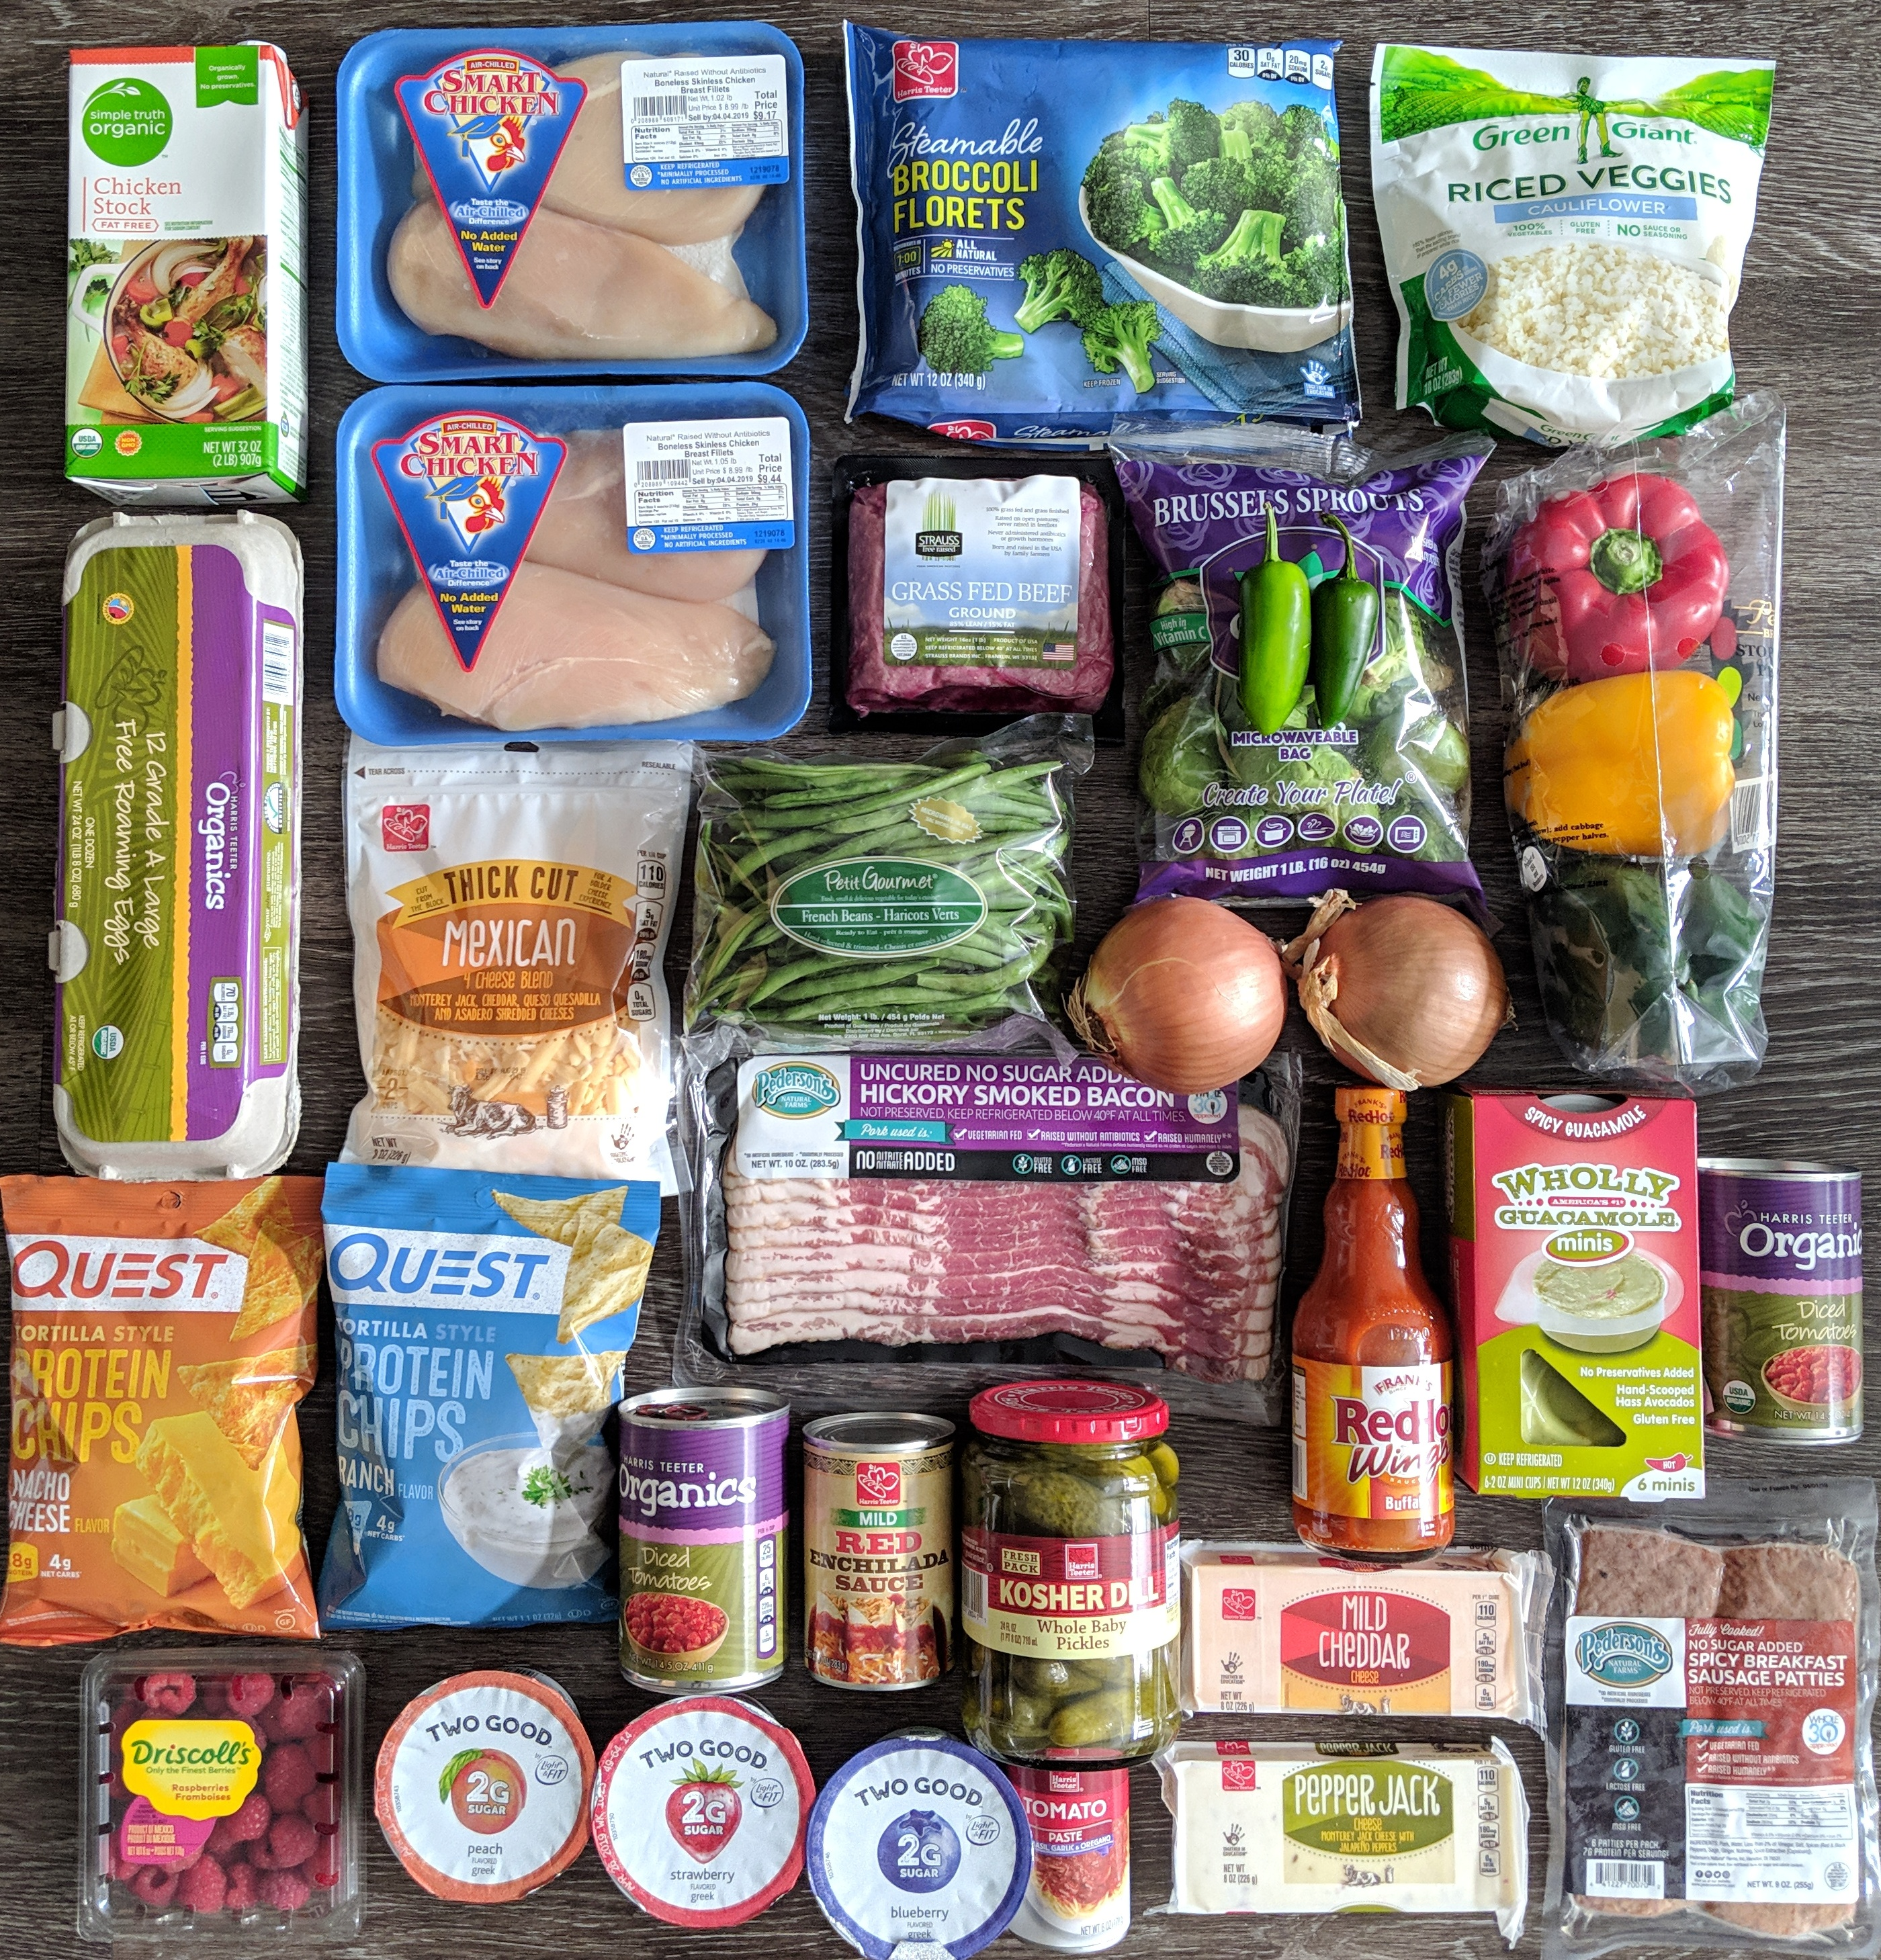 Harris Teeter Grocery Haul & Dinner Menu – getfitlaura